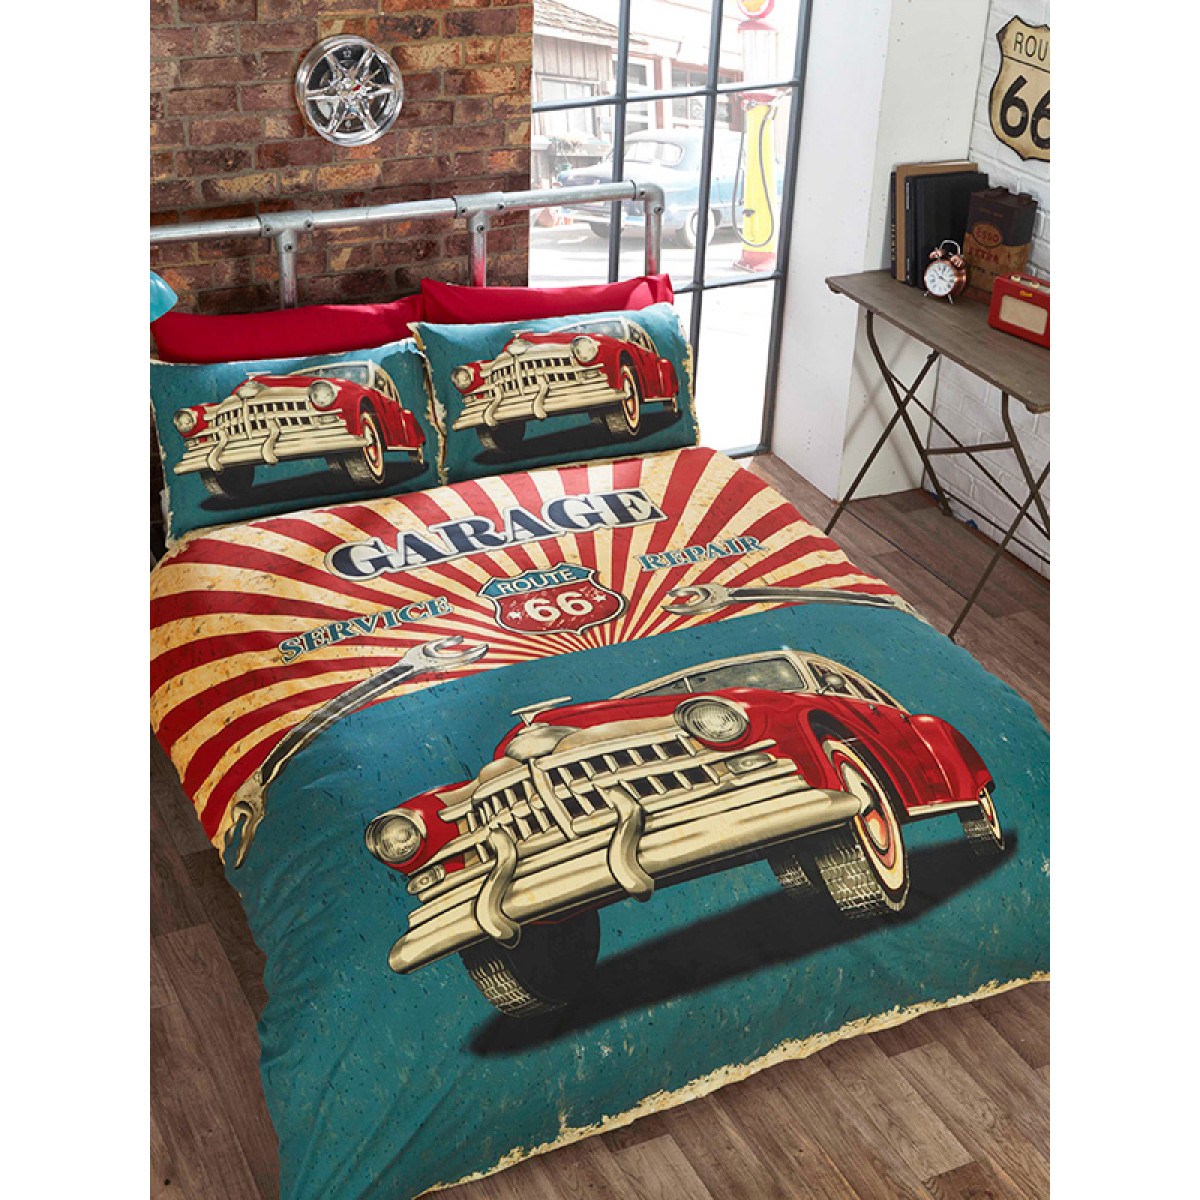 Retro Garage Double Duvet Cover And Pillowcase Set Bedroom Bedding